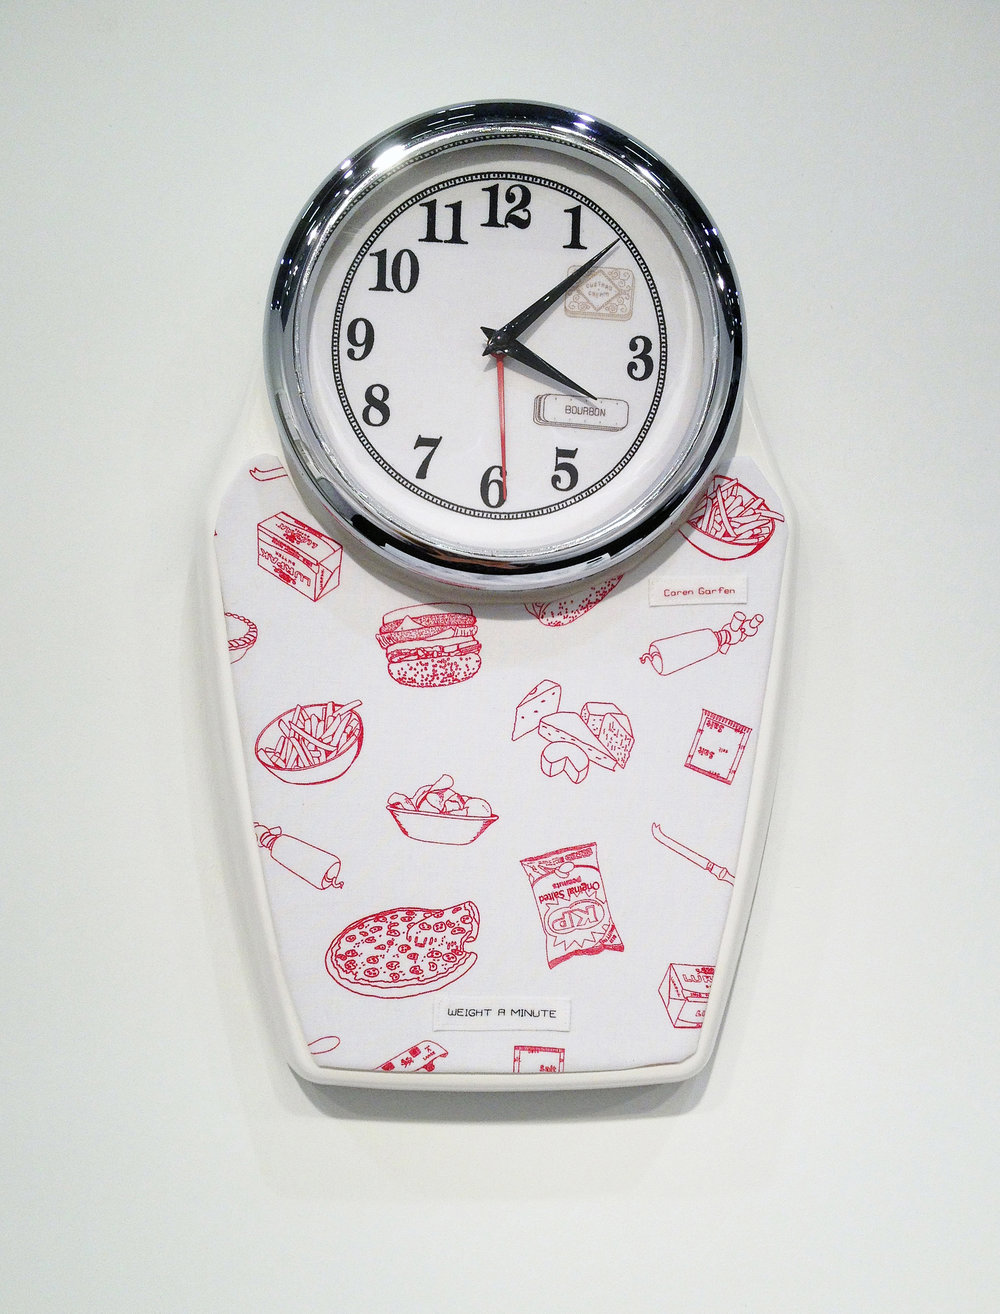 Weight A Minute, 2014